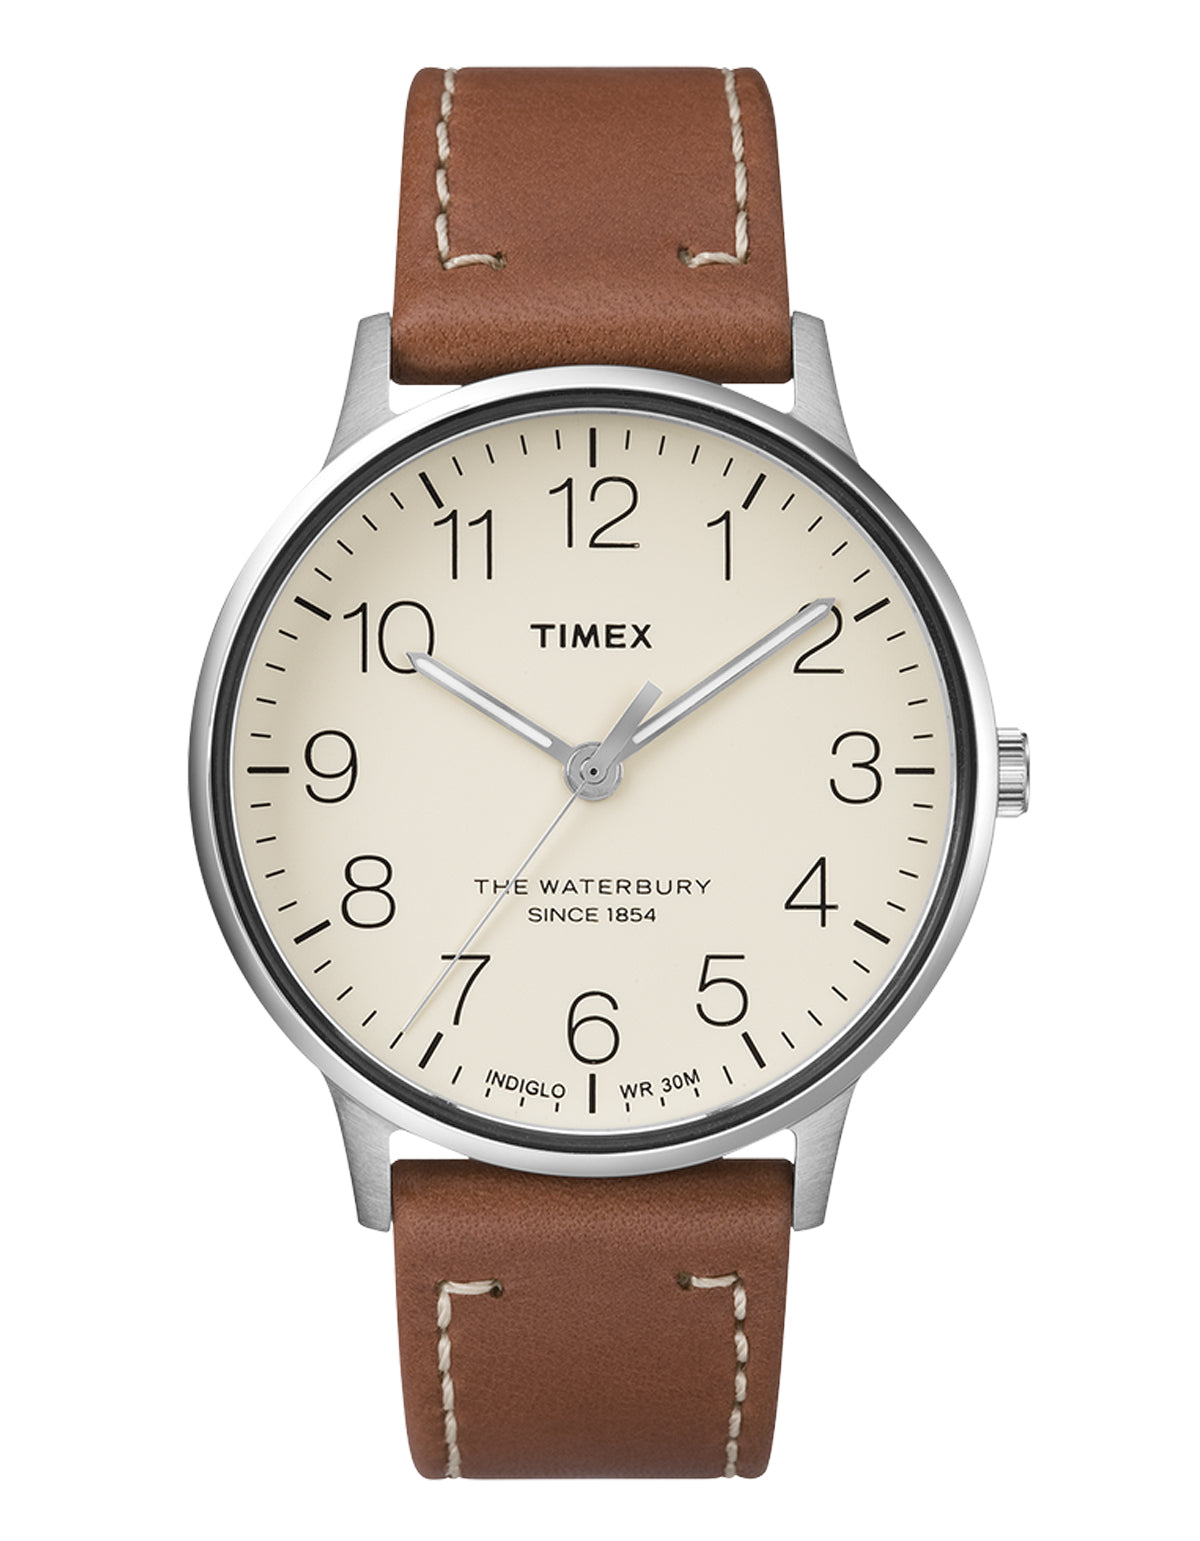 Timex Waterbury Watch Stainless Steel Brown Cream